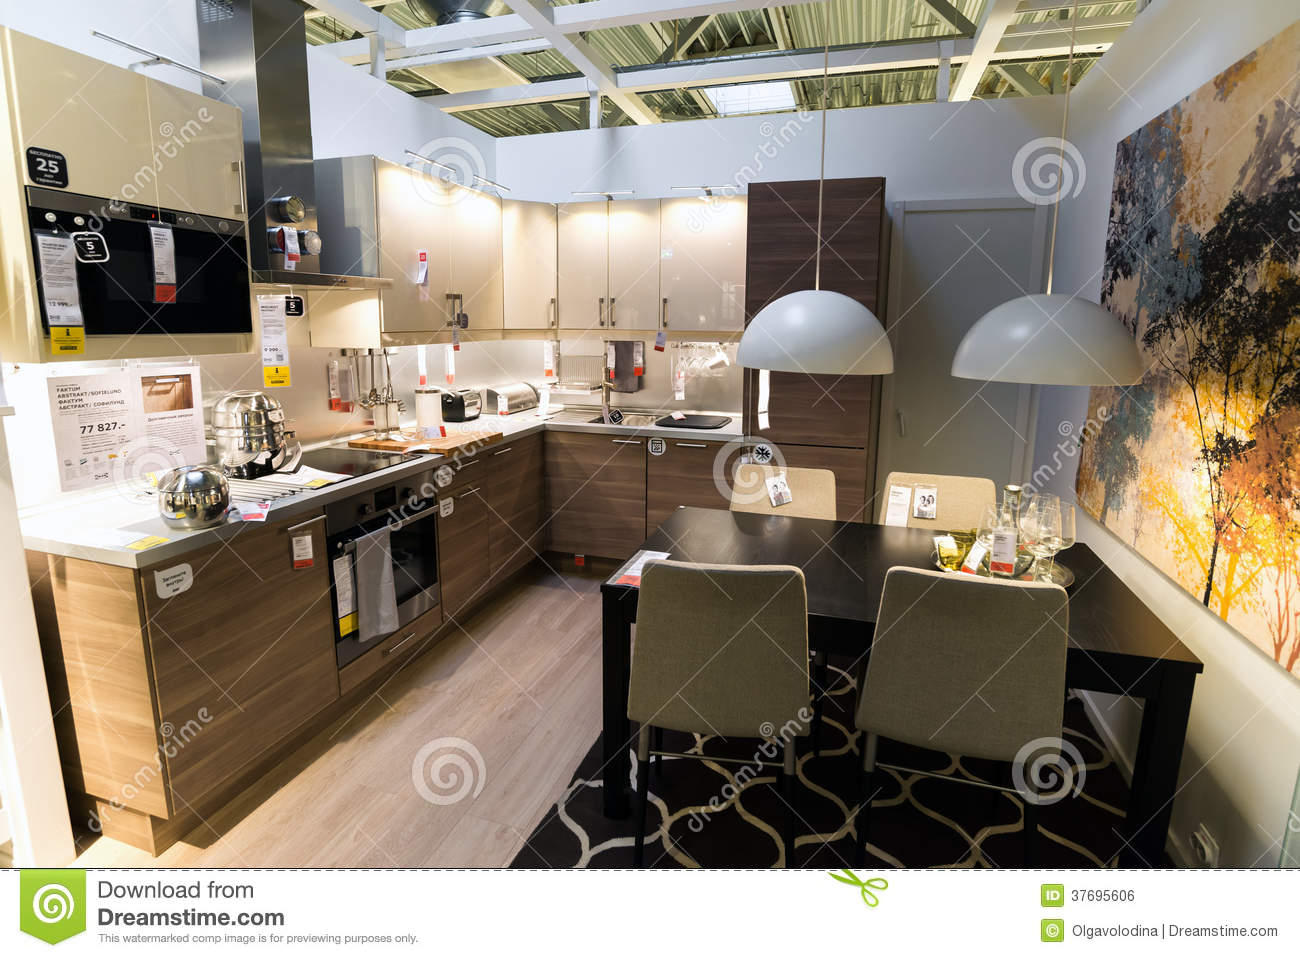 cuisine dans le magasin de meubles ikea photo ditorial image 37695606. Black Bedroom Furniture Sets. Home Design Ideas